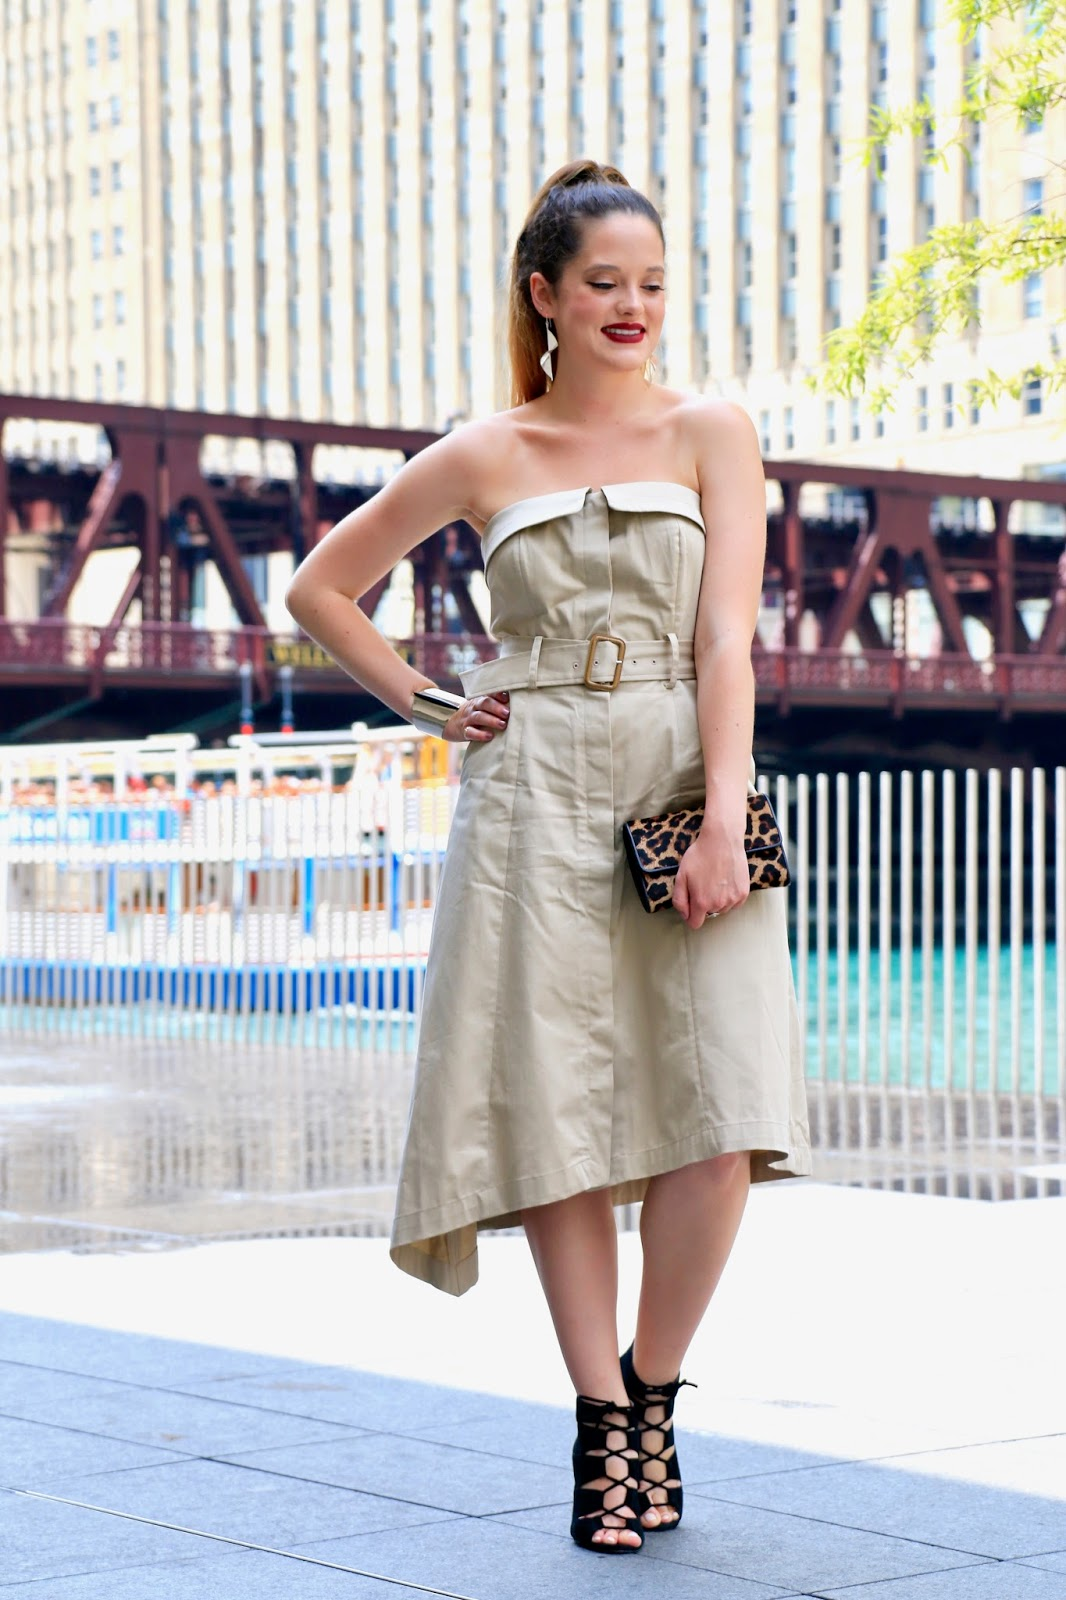 NYC Fashion blogger Kathleen Harper wearing a strapless dress